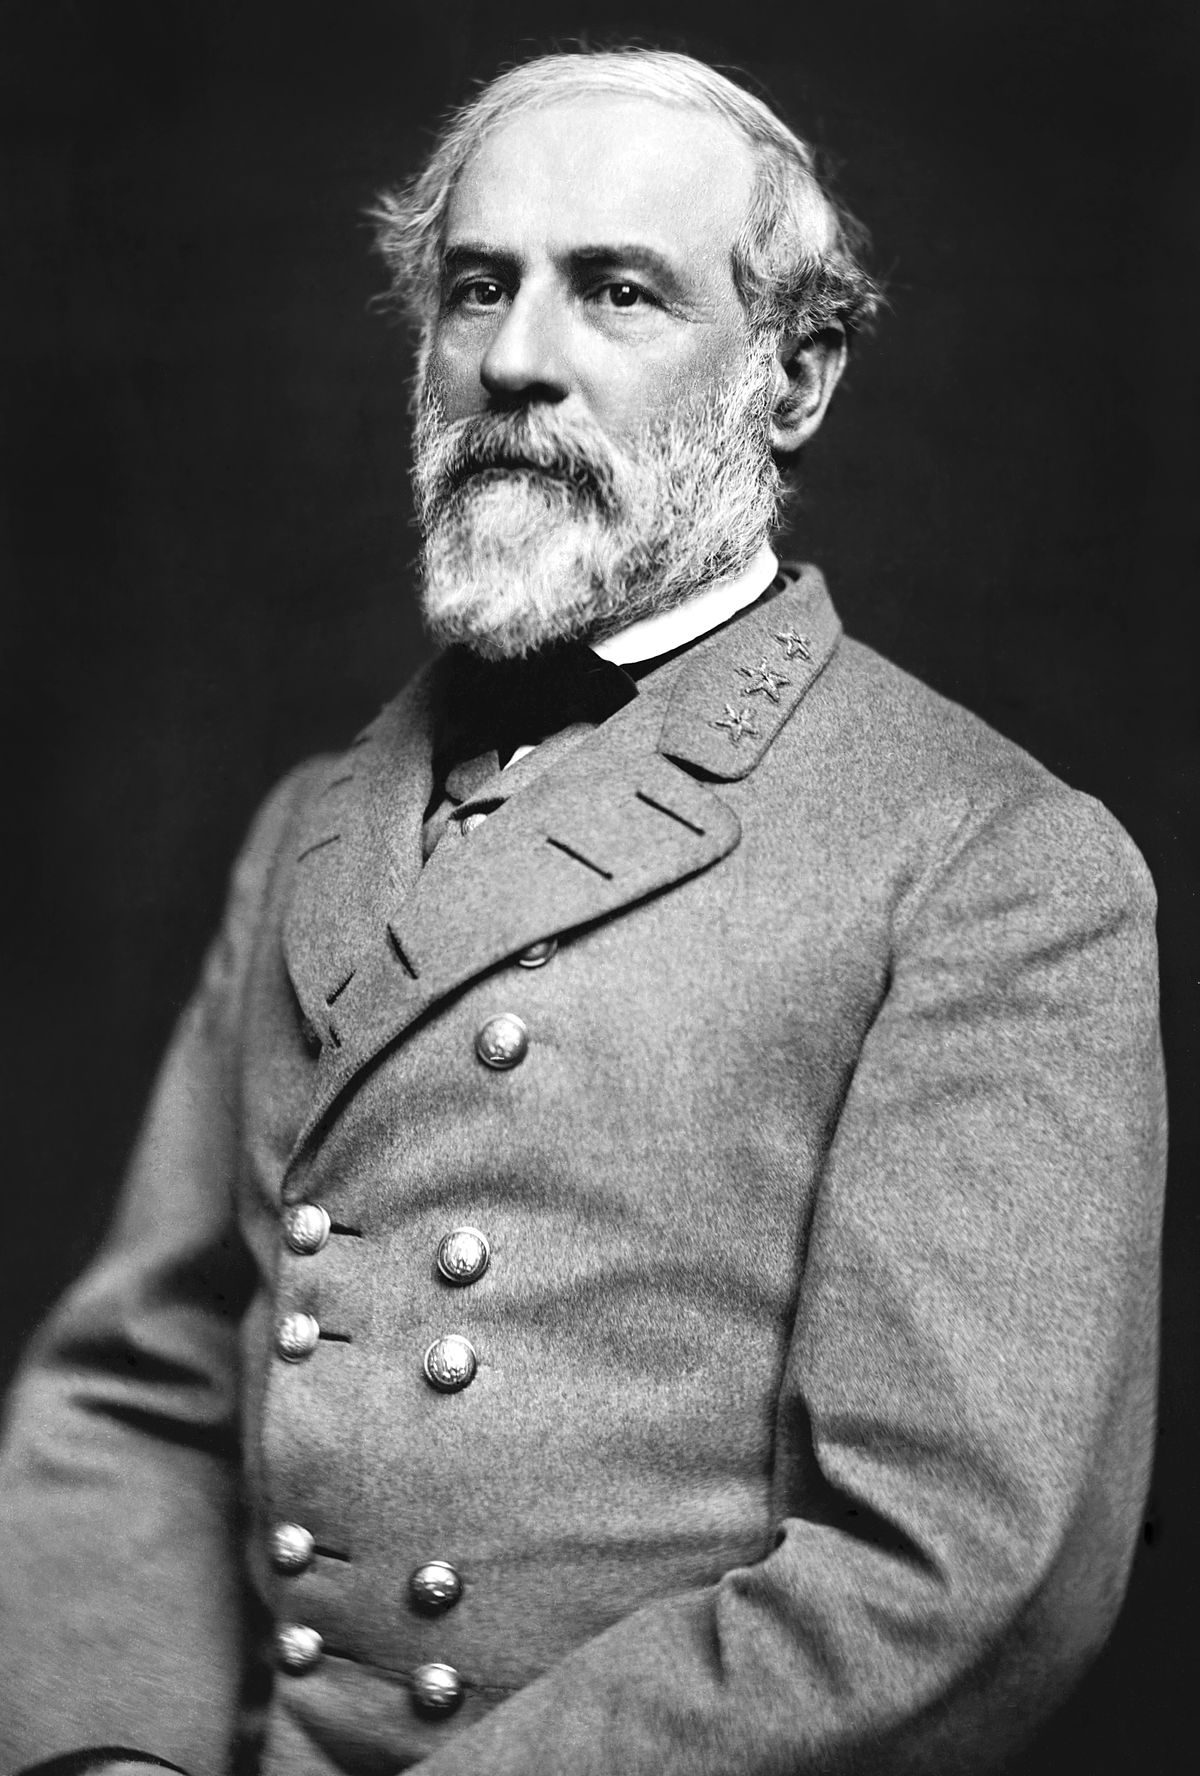 Organic Change - Robert E. Lee, Commander of the Confederate States ArmyBorn: January 19, 1807, Stratford Hall, Stratford, VADied: October 12, 1870, Lexington, VA